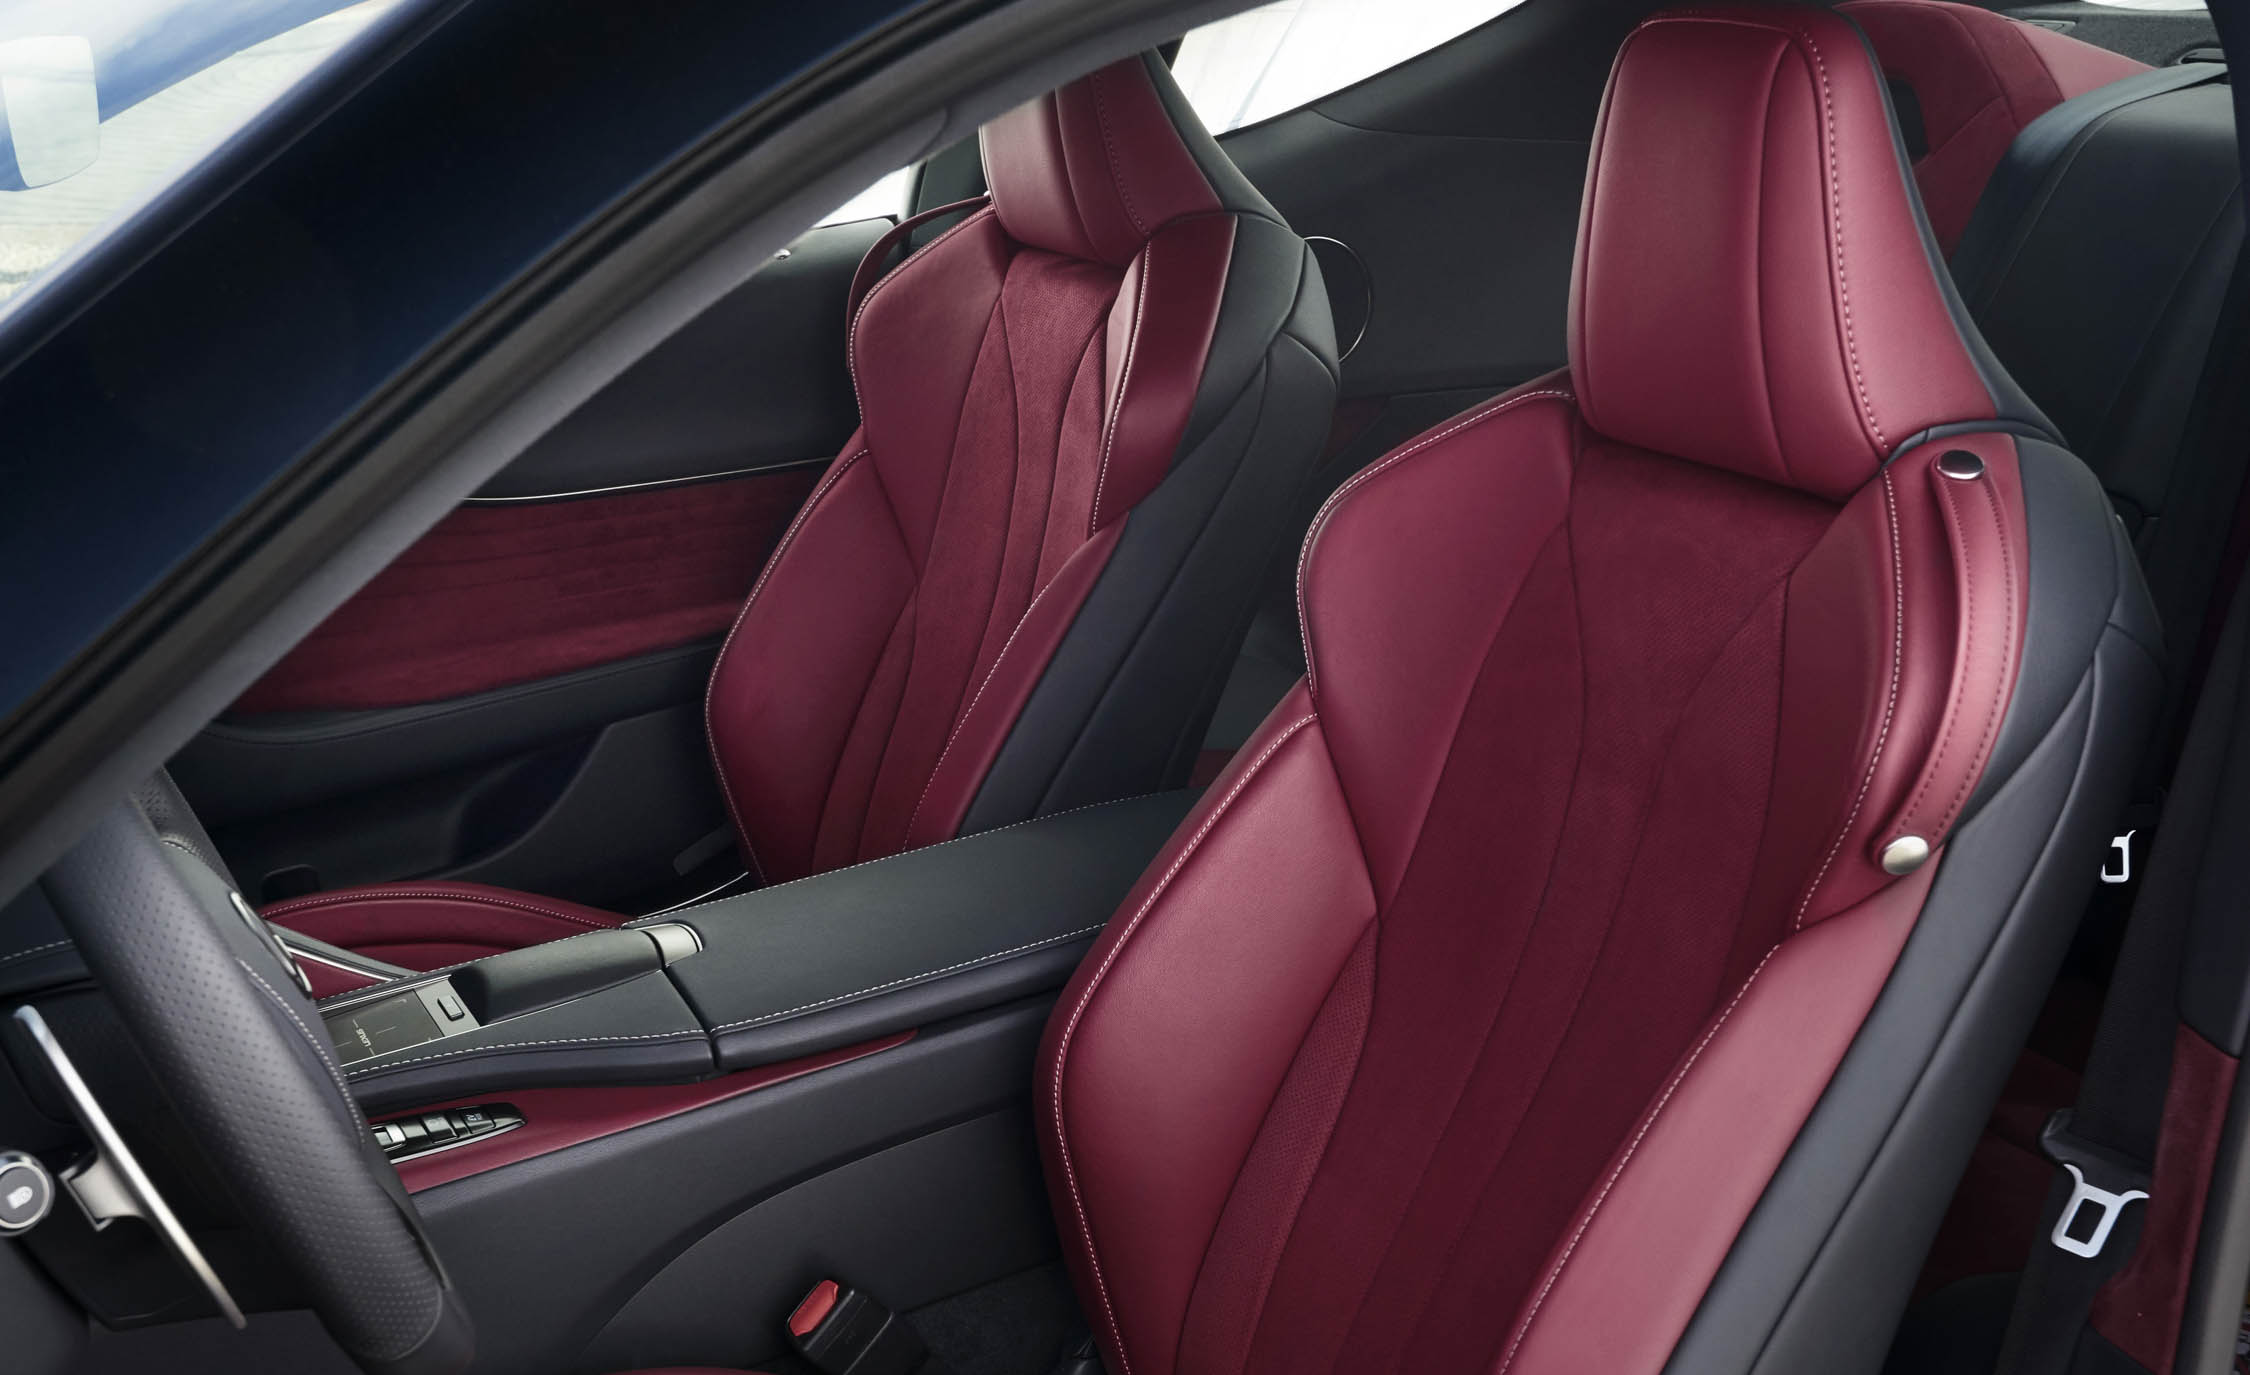 2018 Lexus Lc 500h Interior Seats Front (Photo 55 of 84)